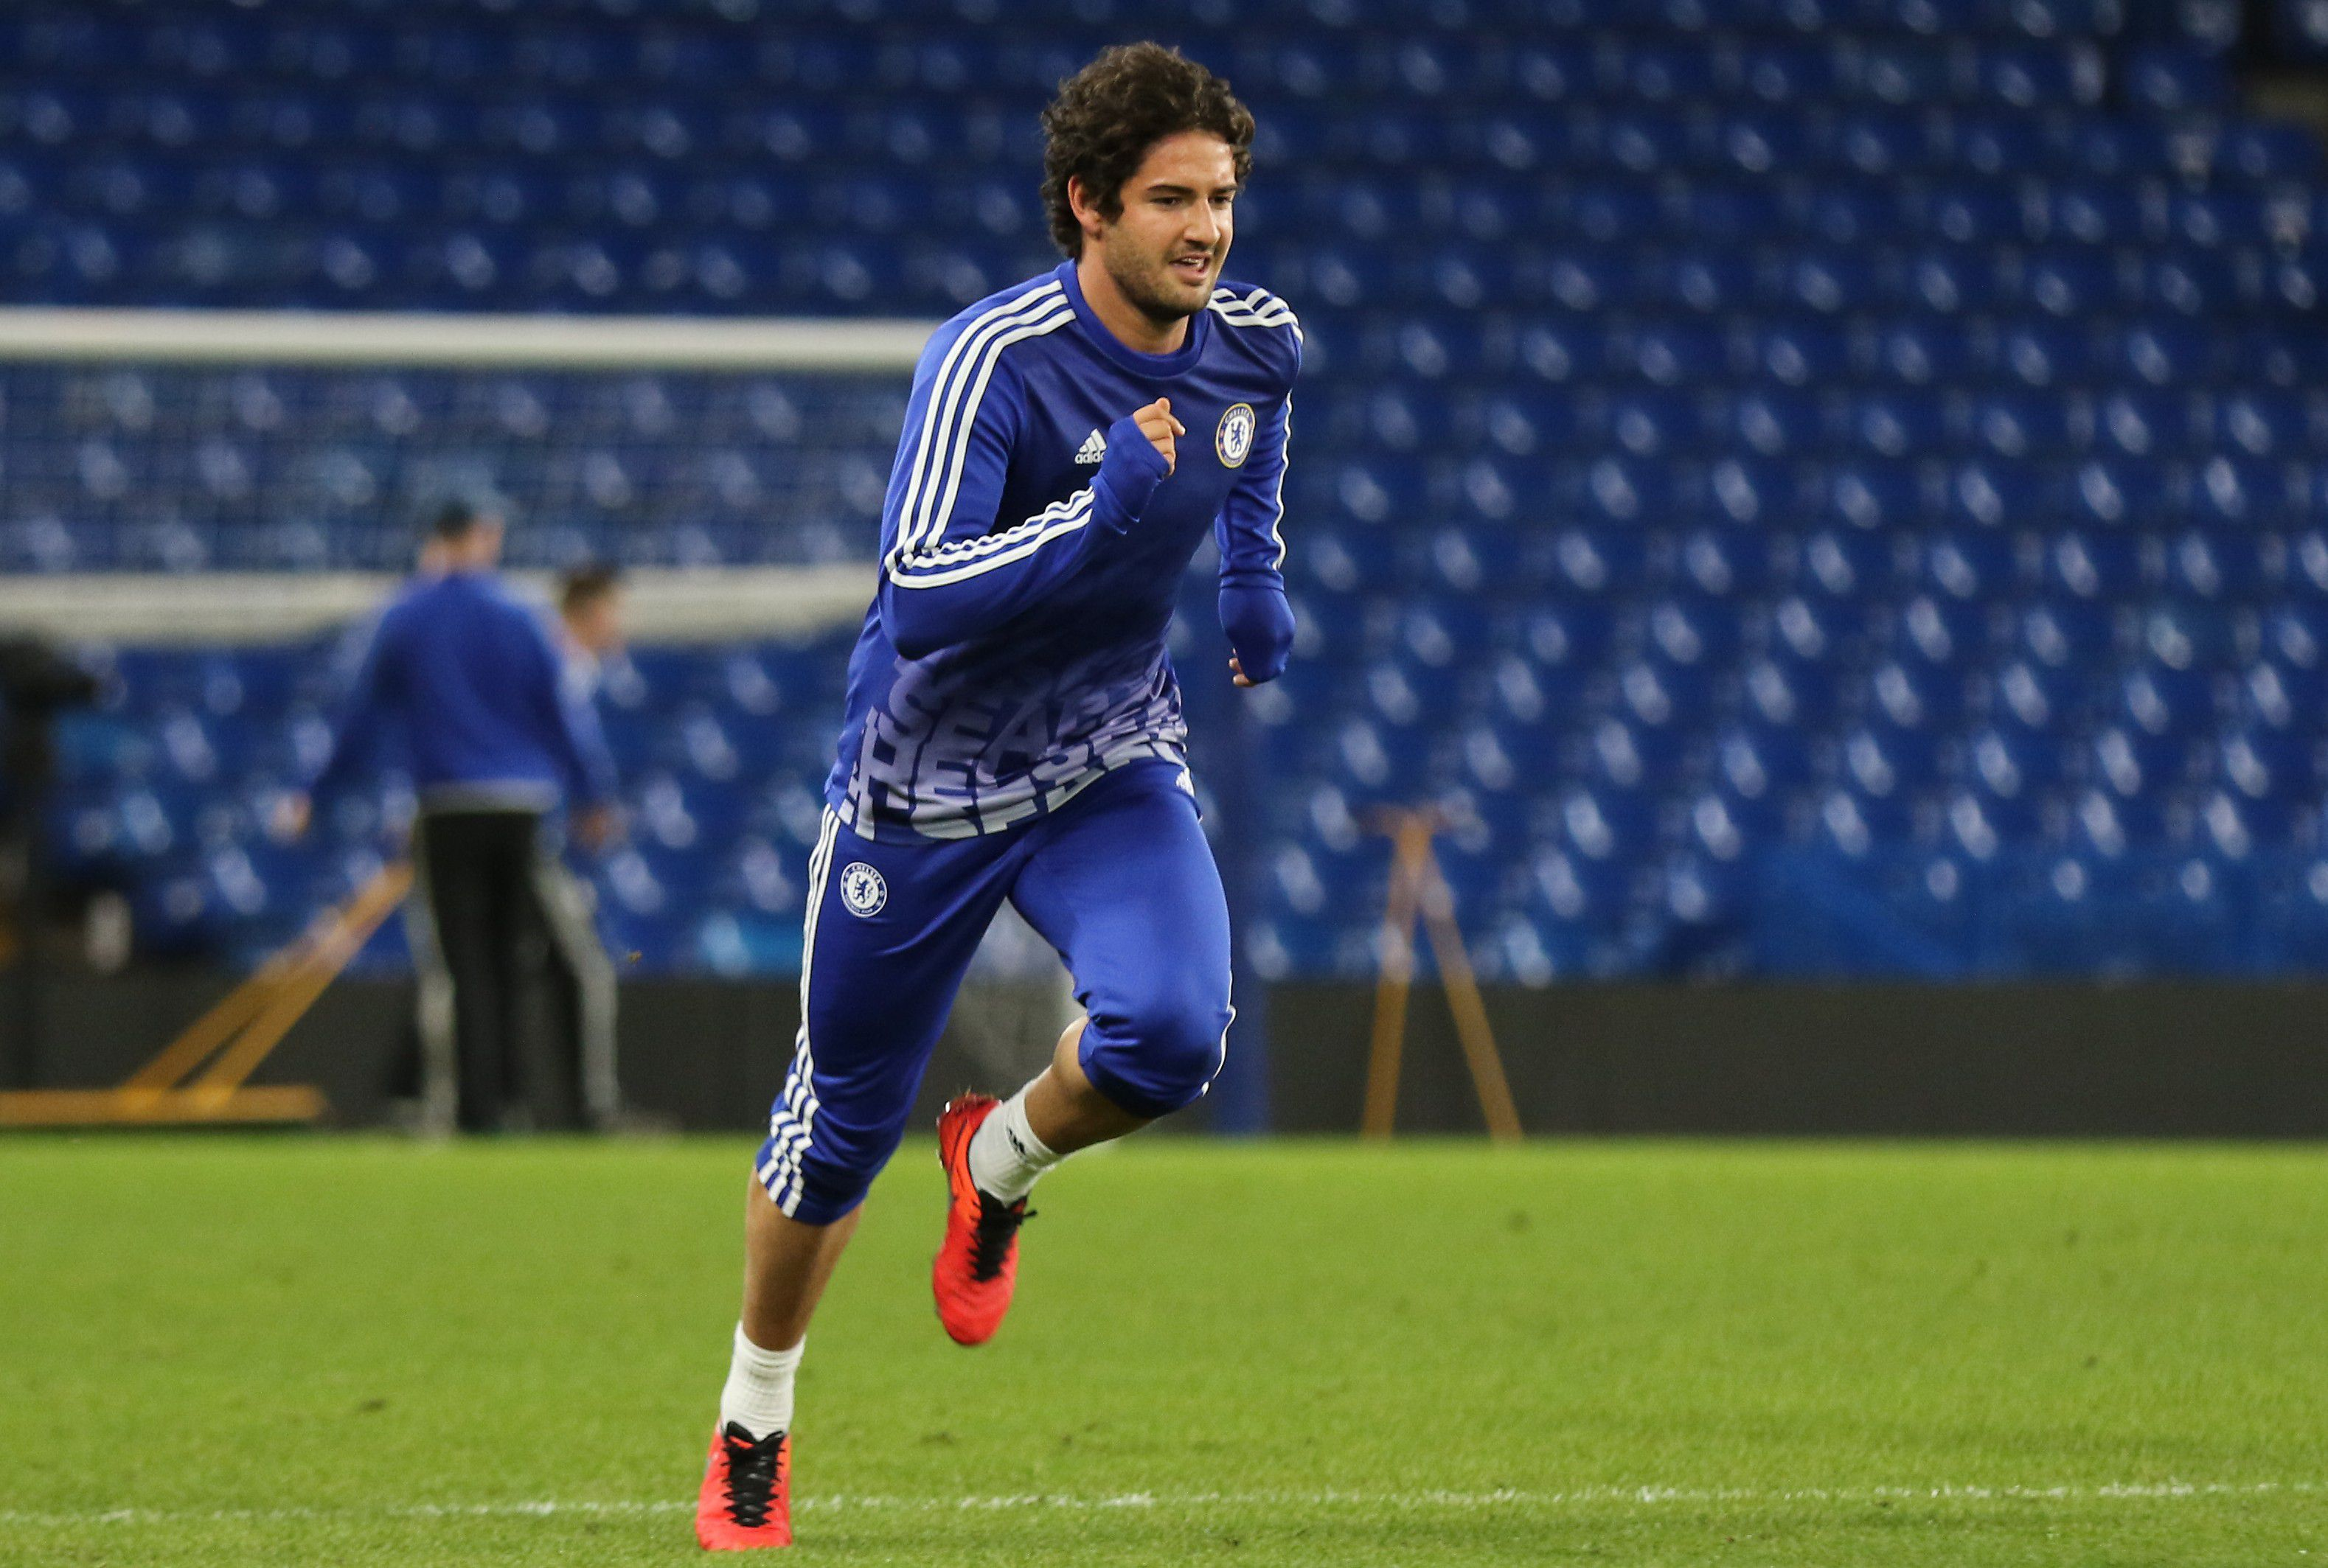 Norwich City v Chelsea Premier League: Team news, injury news, team line ups and TV times